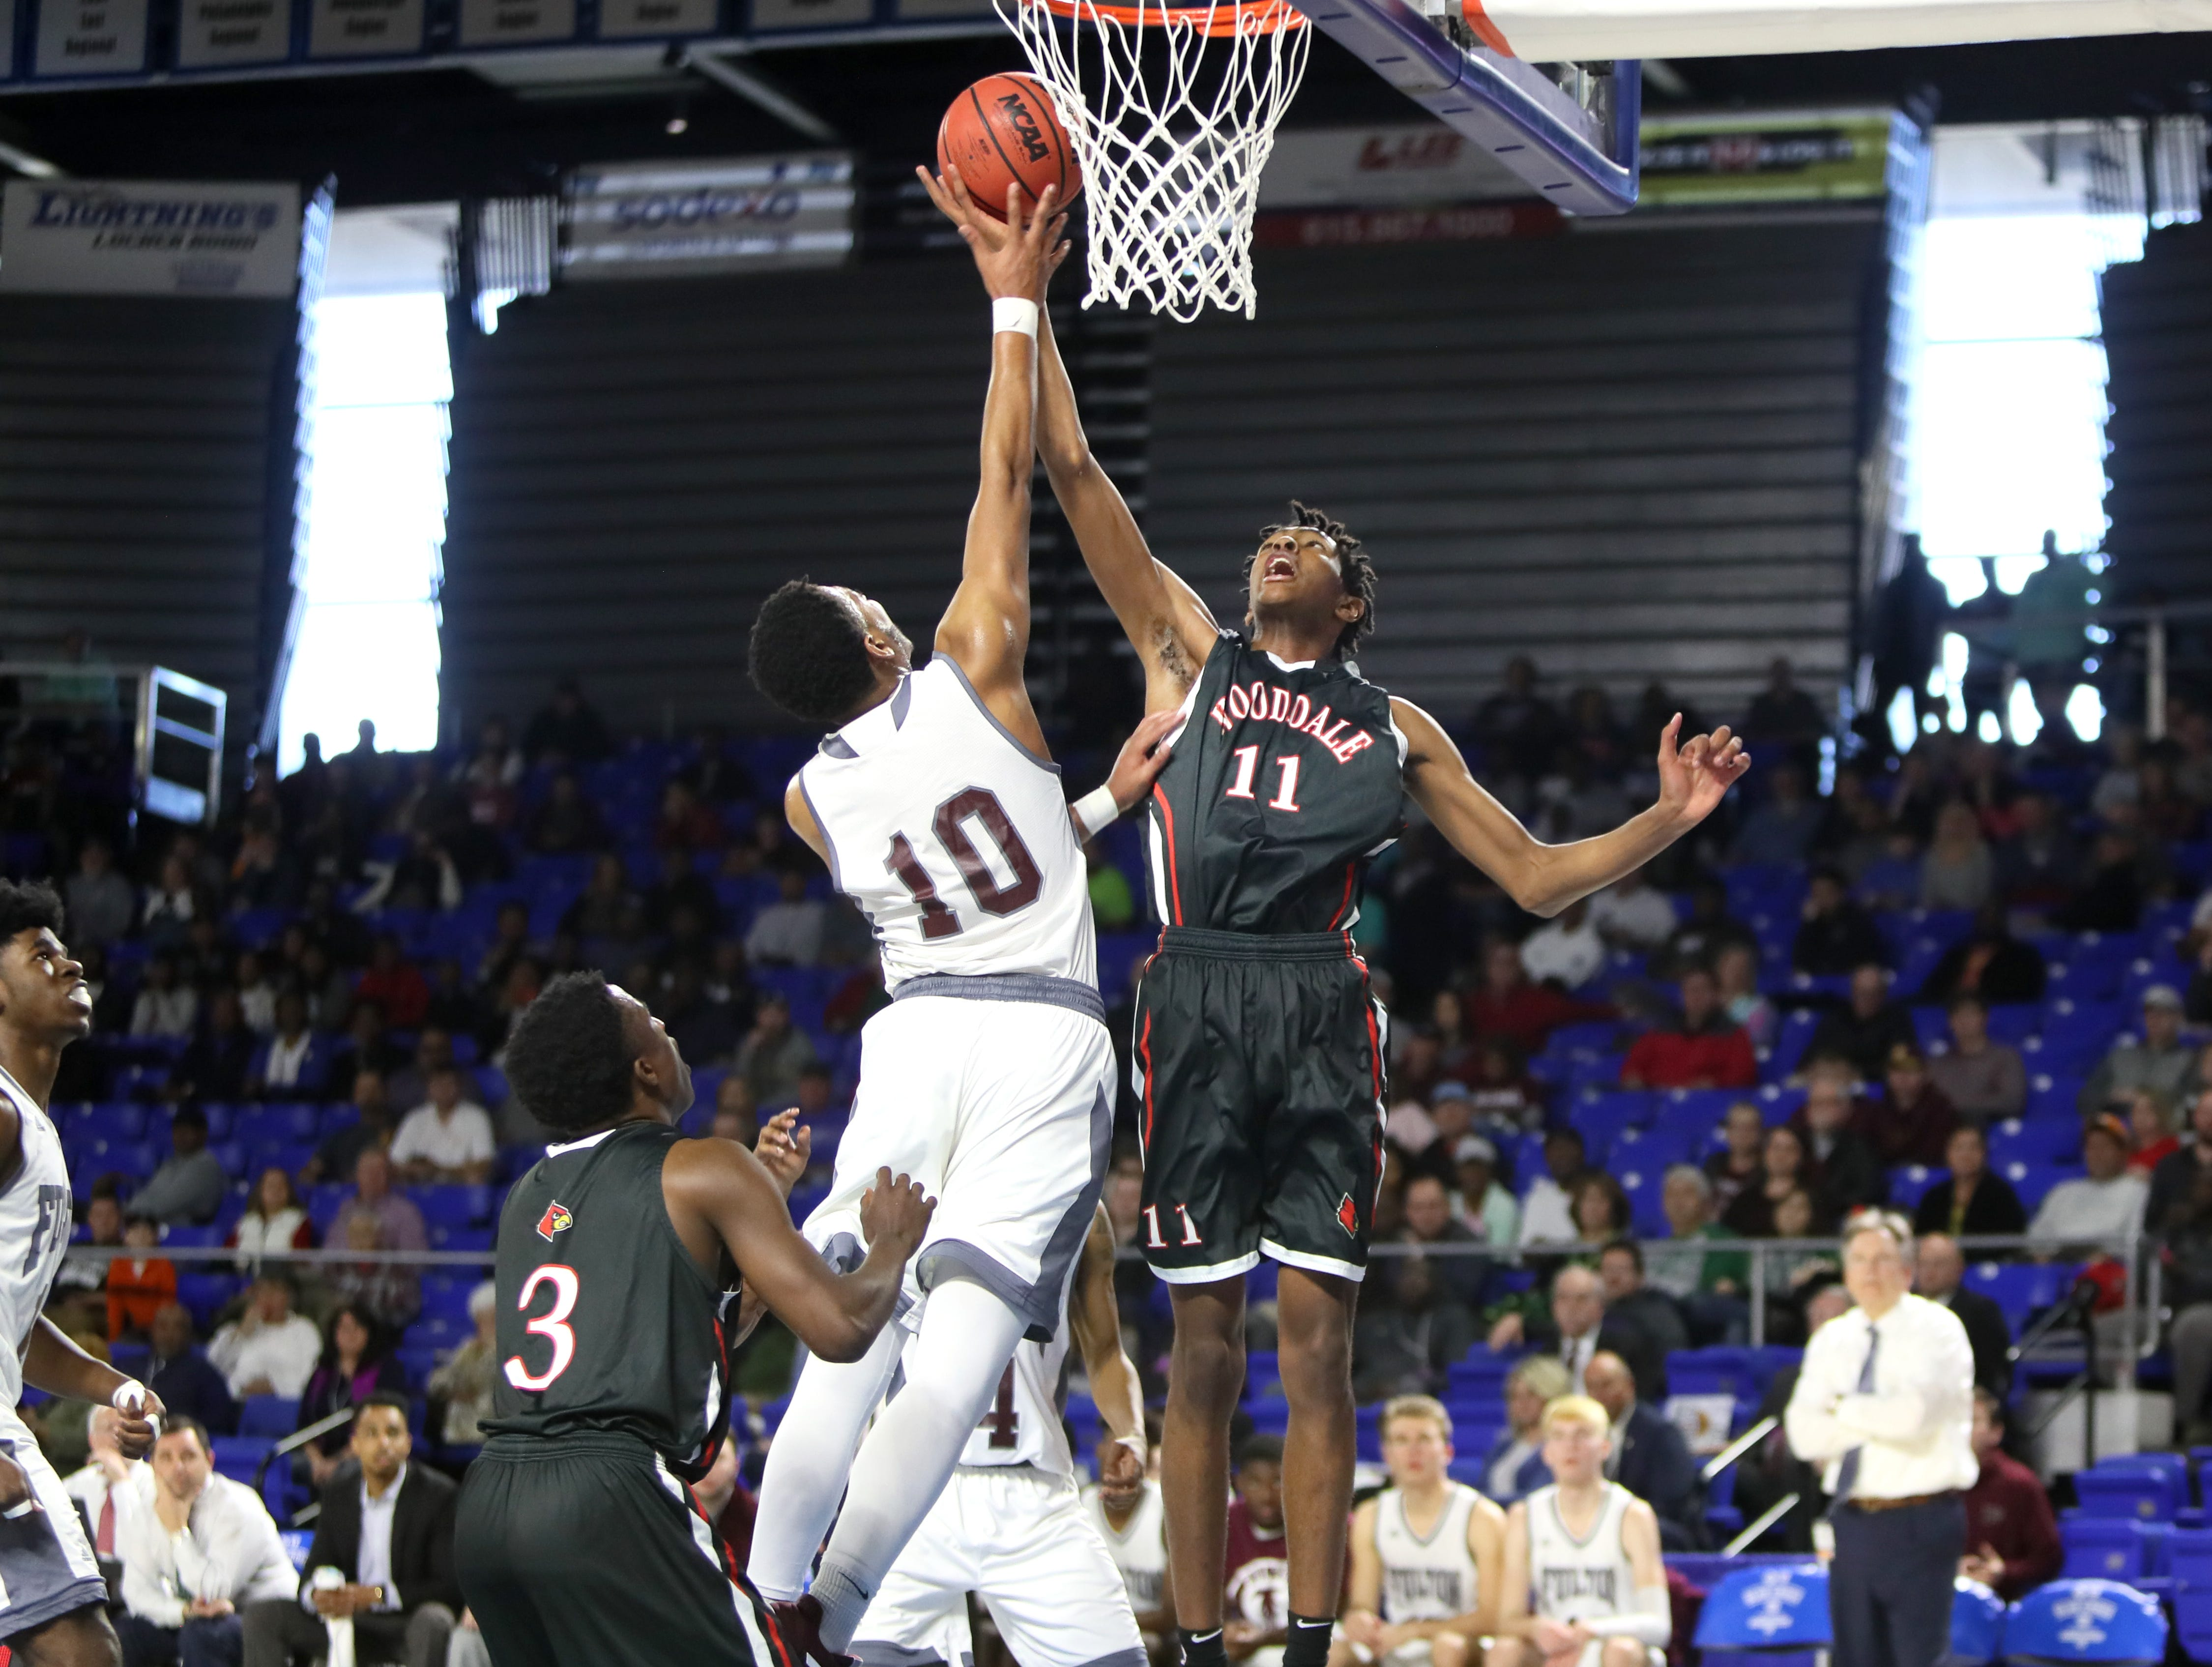 Wooddale's Johnathan Lawson shoots the ball over Fulton's Trey West during the Class AA boys basketball state championship game at the Murphy Center in Murfreesboro, Tenn. on Saturday, March 16, 2019.